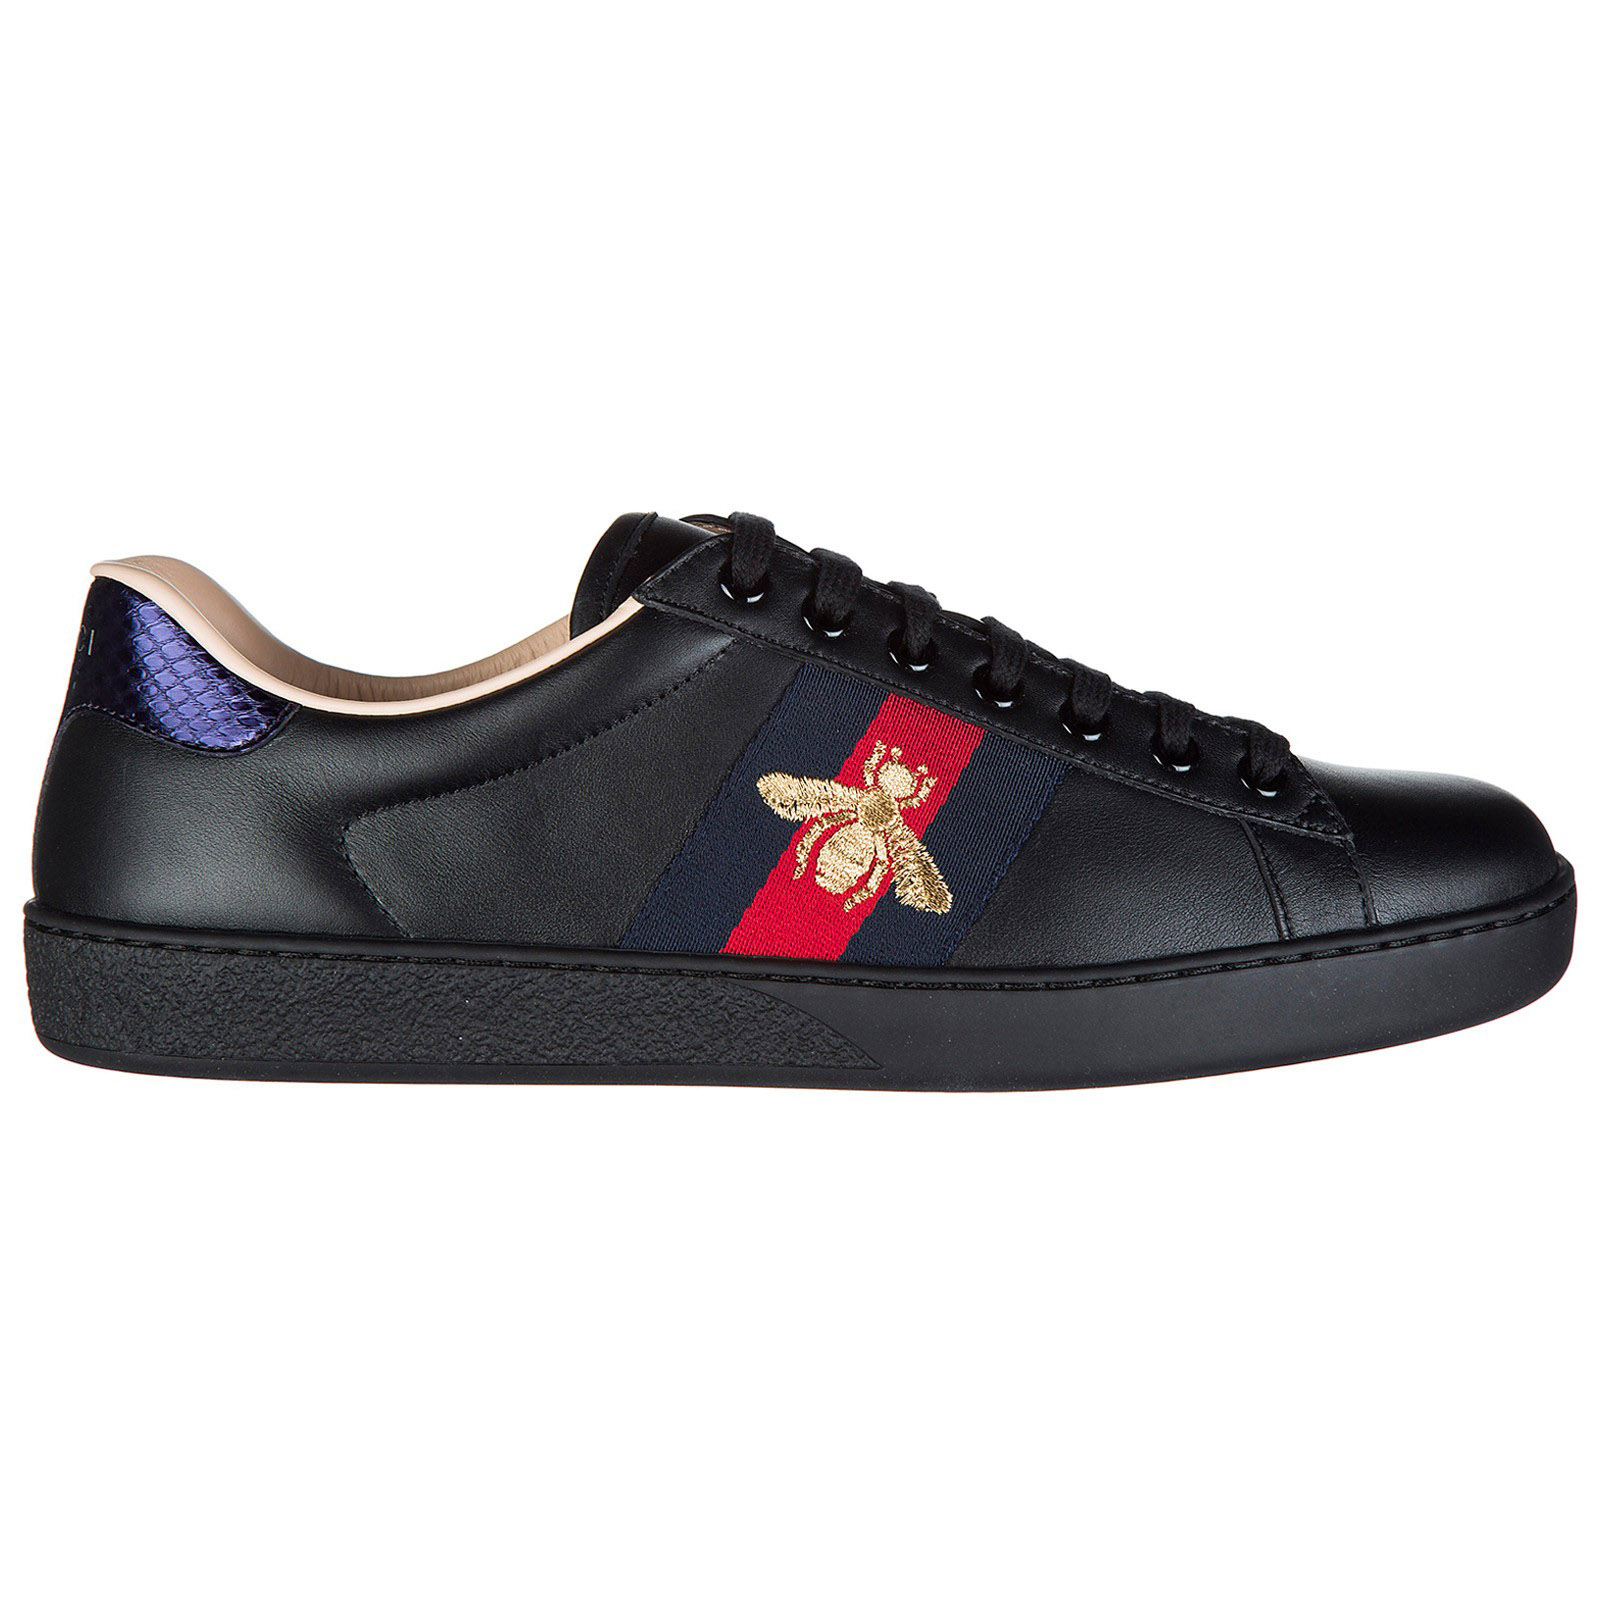 GUCCI MEN'S SHOES LEATHER TRAINERS SNEAKERS MIRO SOFT